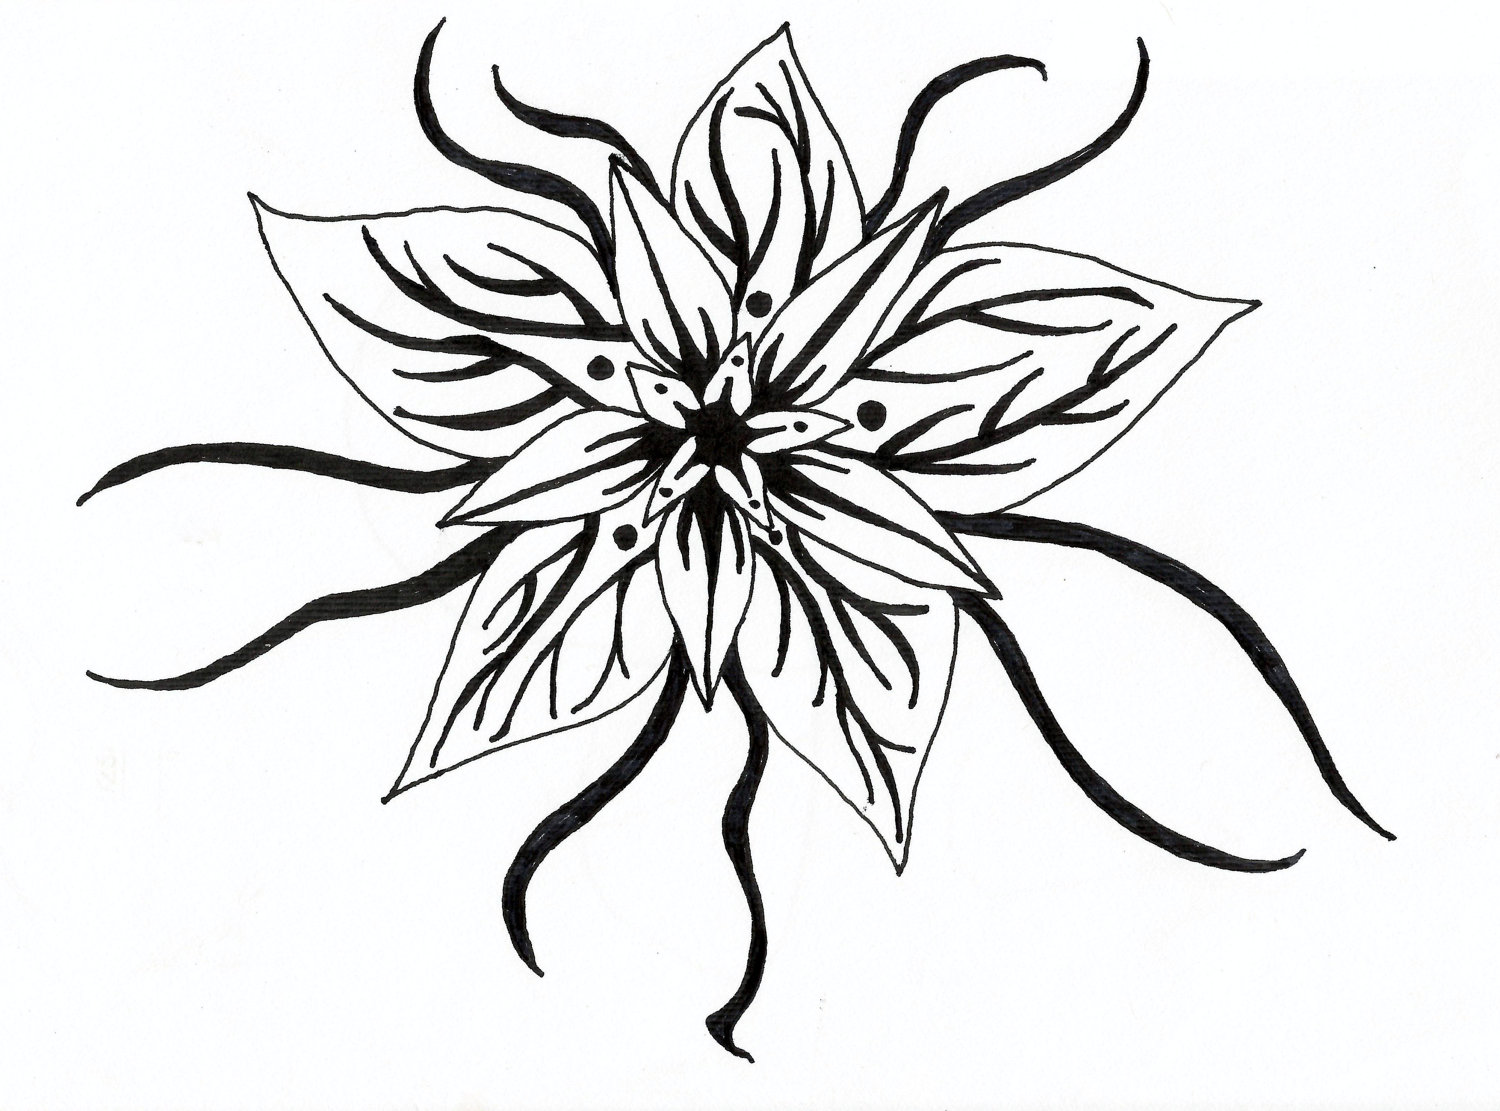 Flowers Black And White Drawing - ClipArt Best